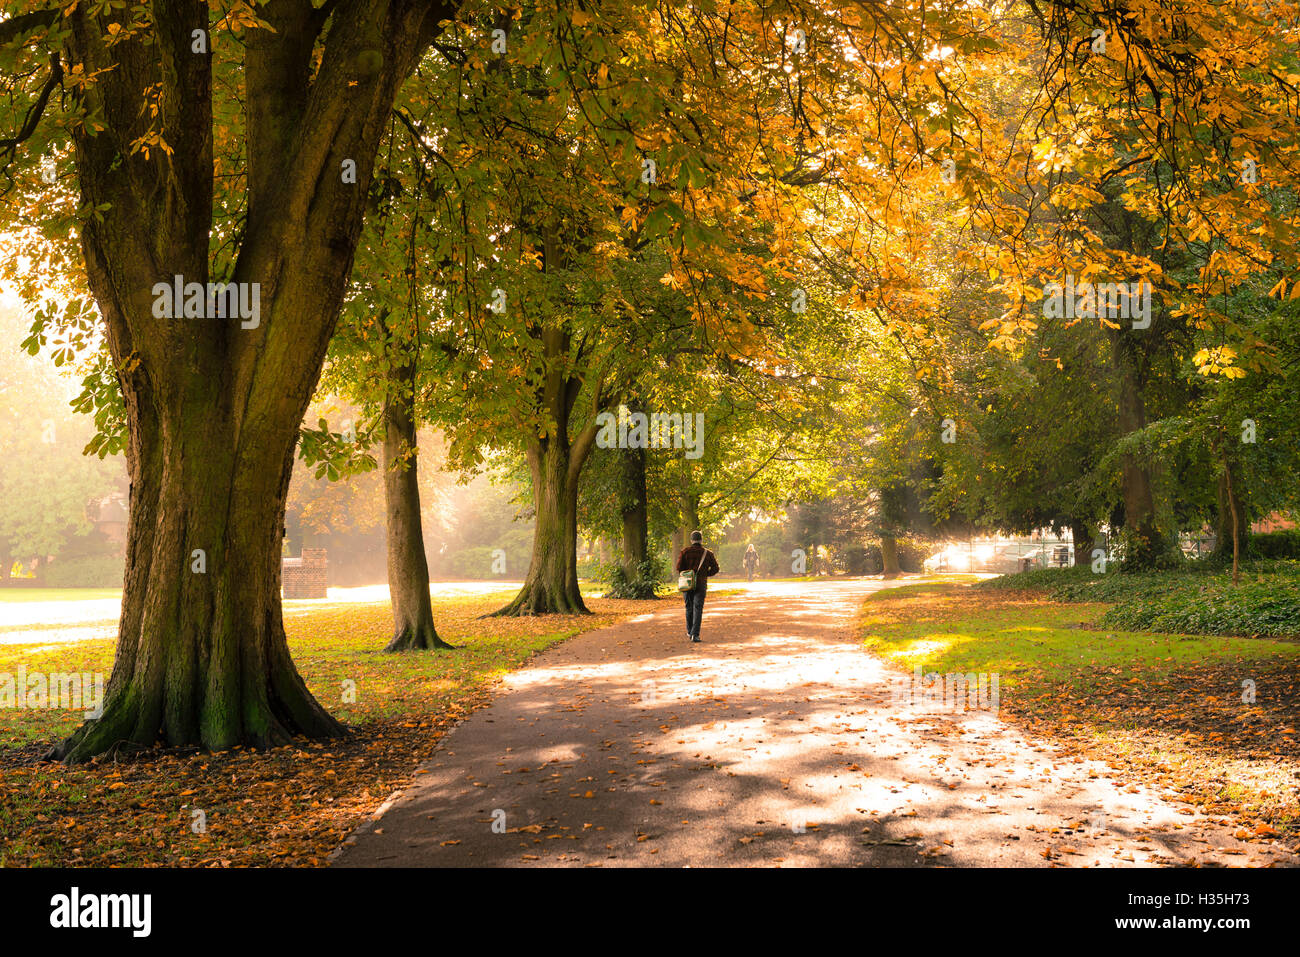 Person walking alone at West Park, Wolverhampton, England, UK - Stock Image